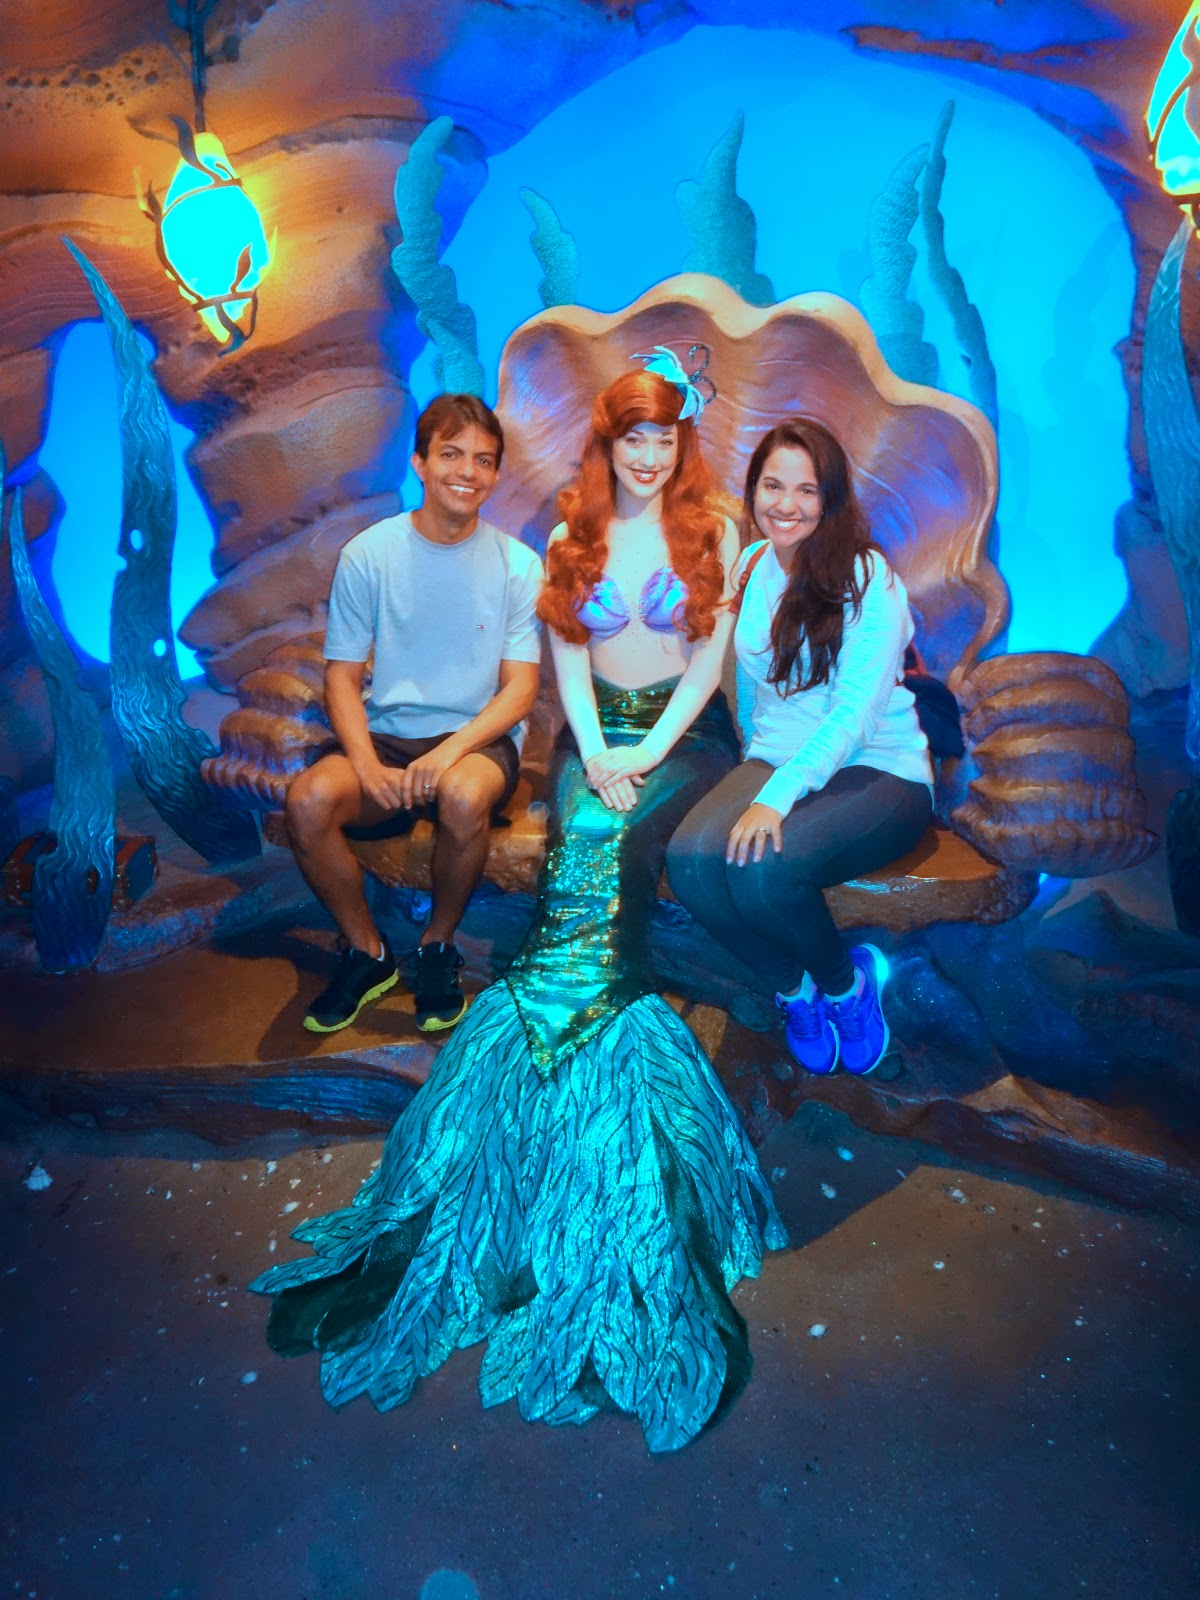 sereia - magic kingdom - orlando, eua